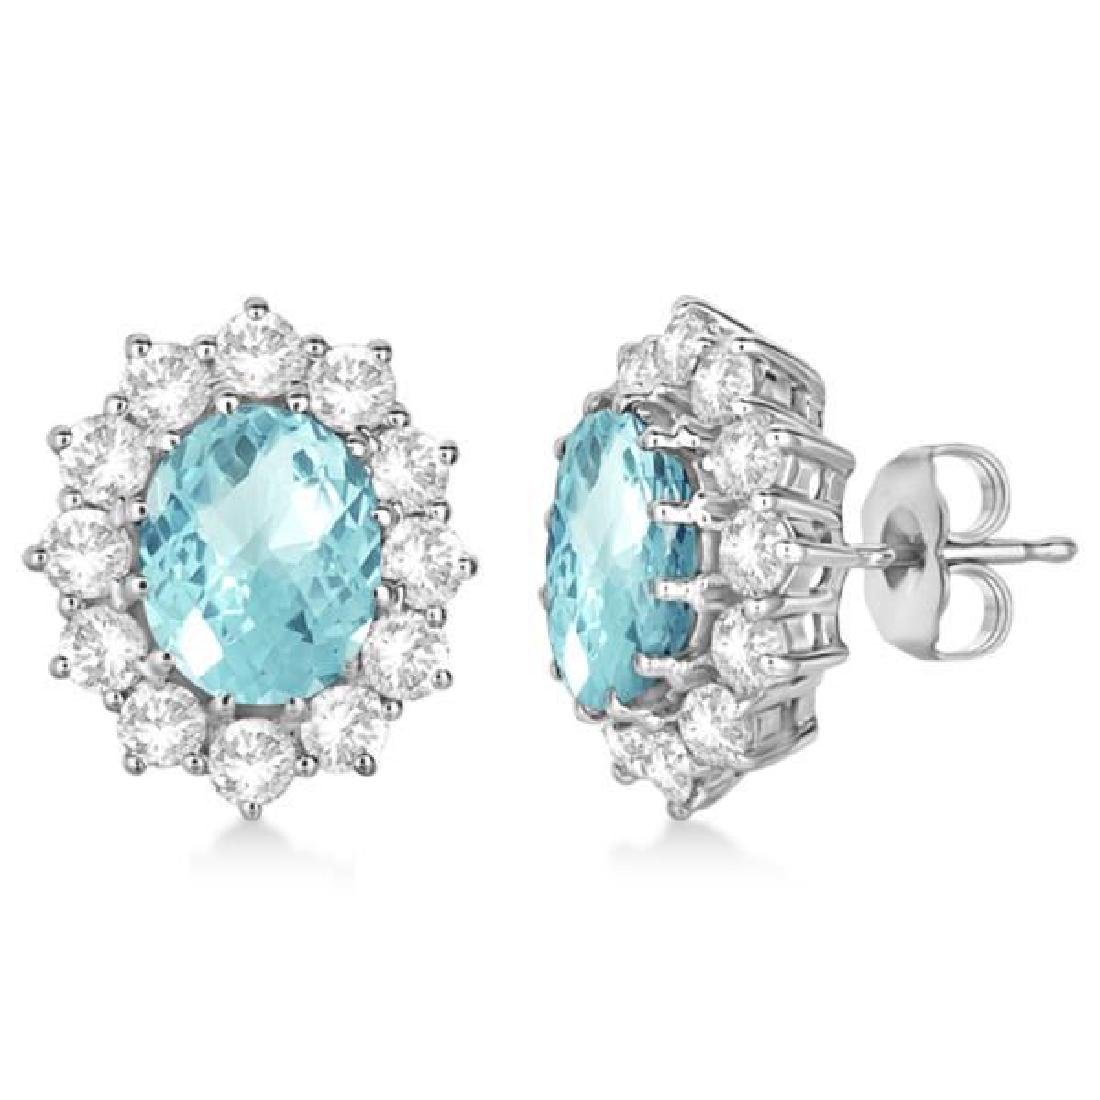 Oval Aquamarine and Diamond Accented Earrings 14k White